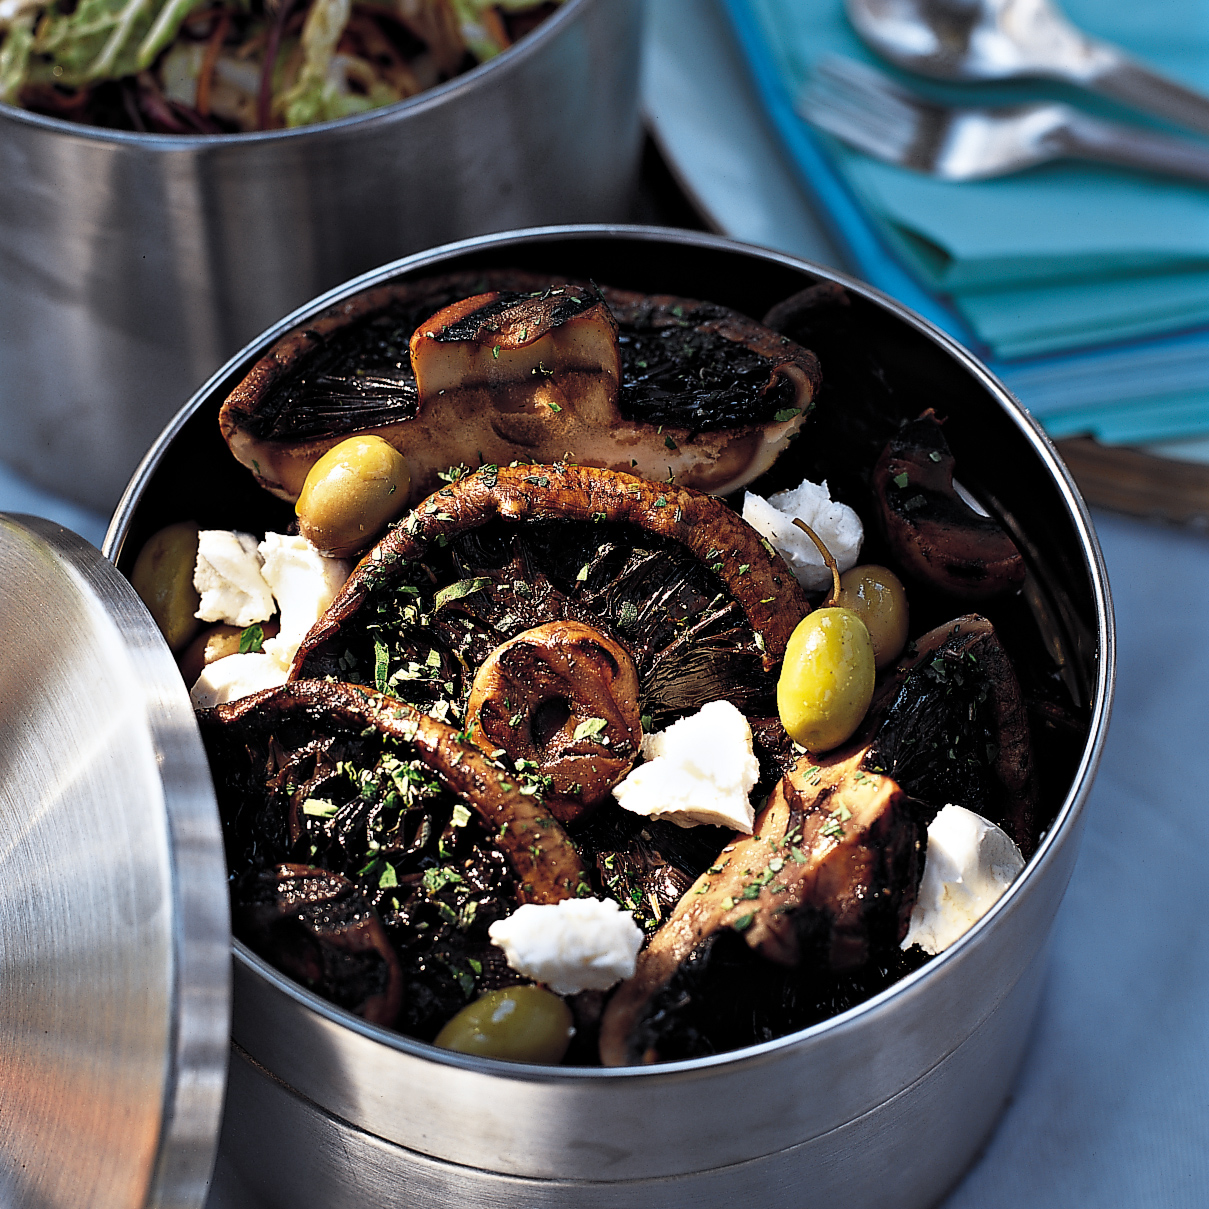 Marinated Portobellos with Olives and Goat Cheese